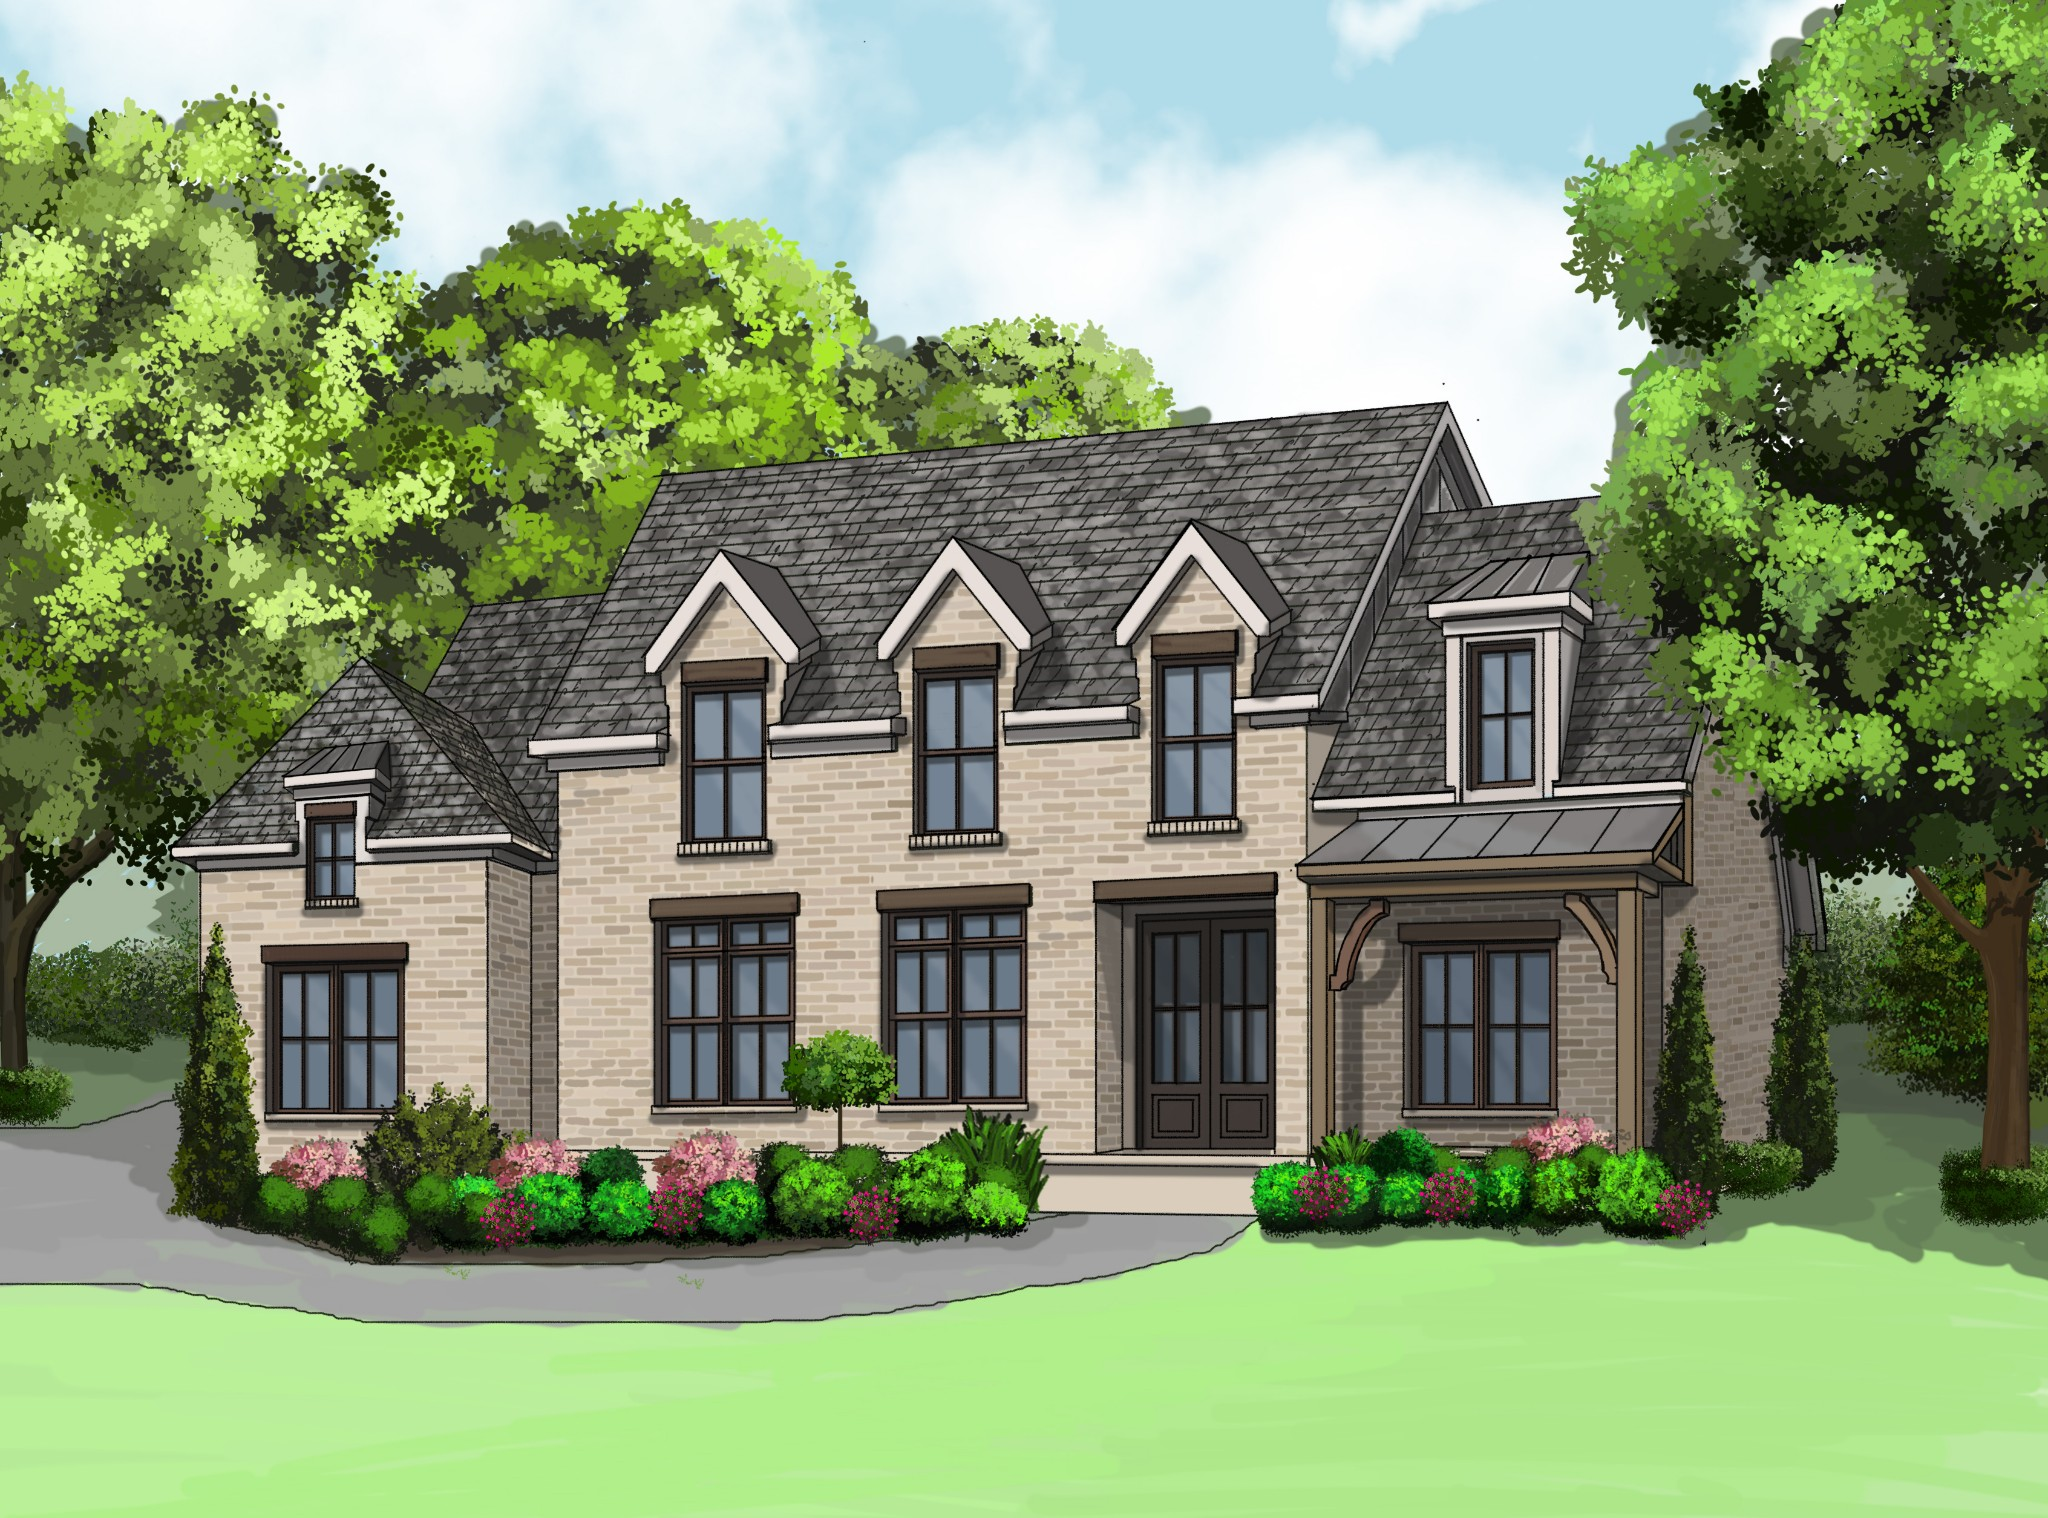 Tennessee Valley Homes Pre-Sale! New Phase Underway with More Lots Available!